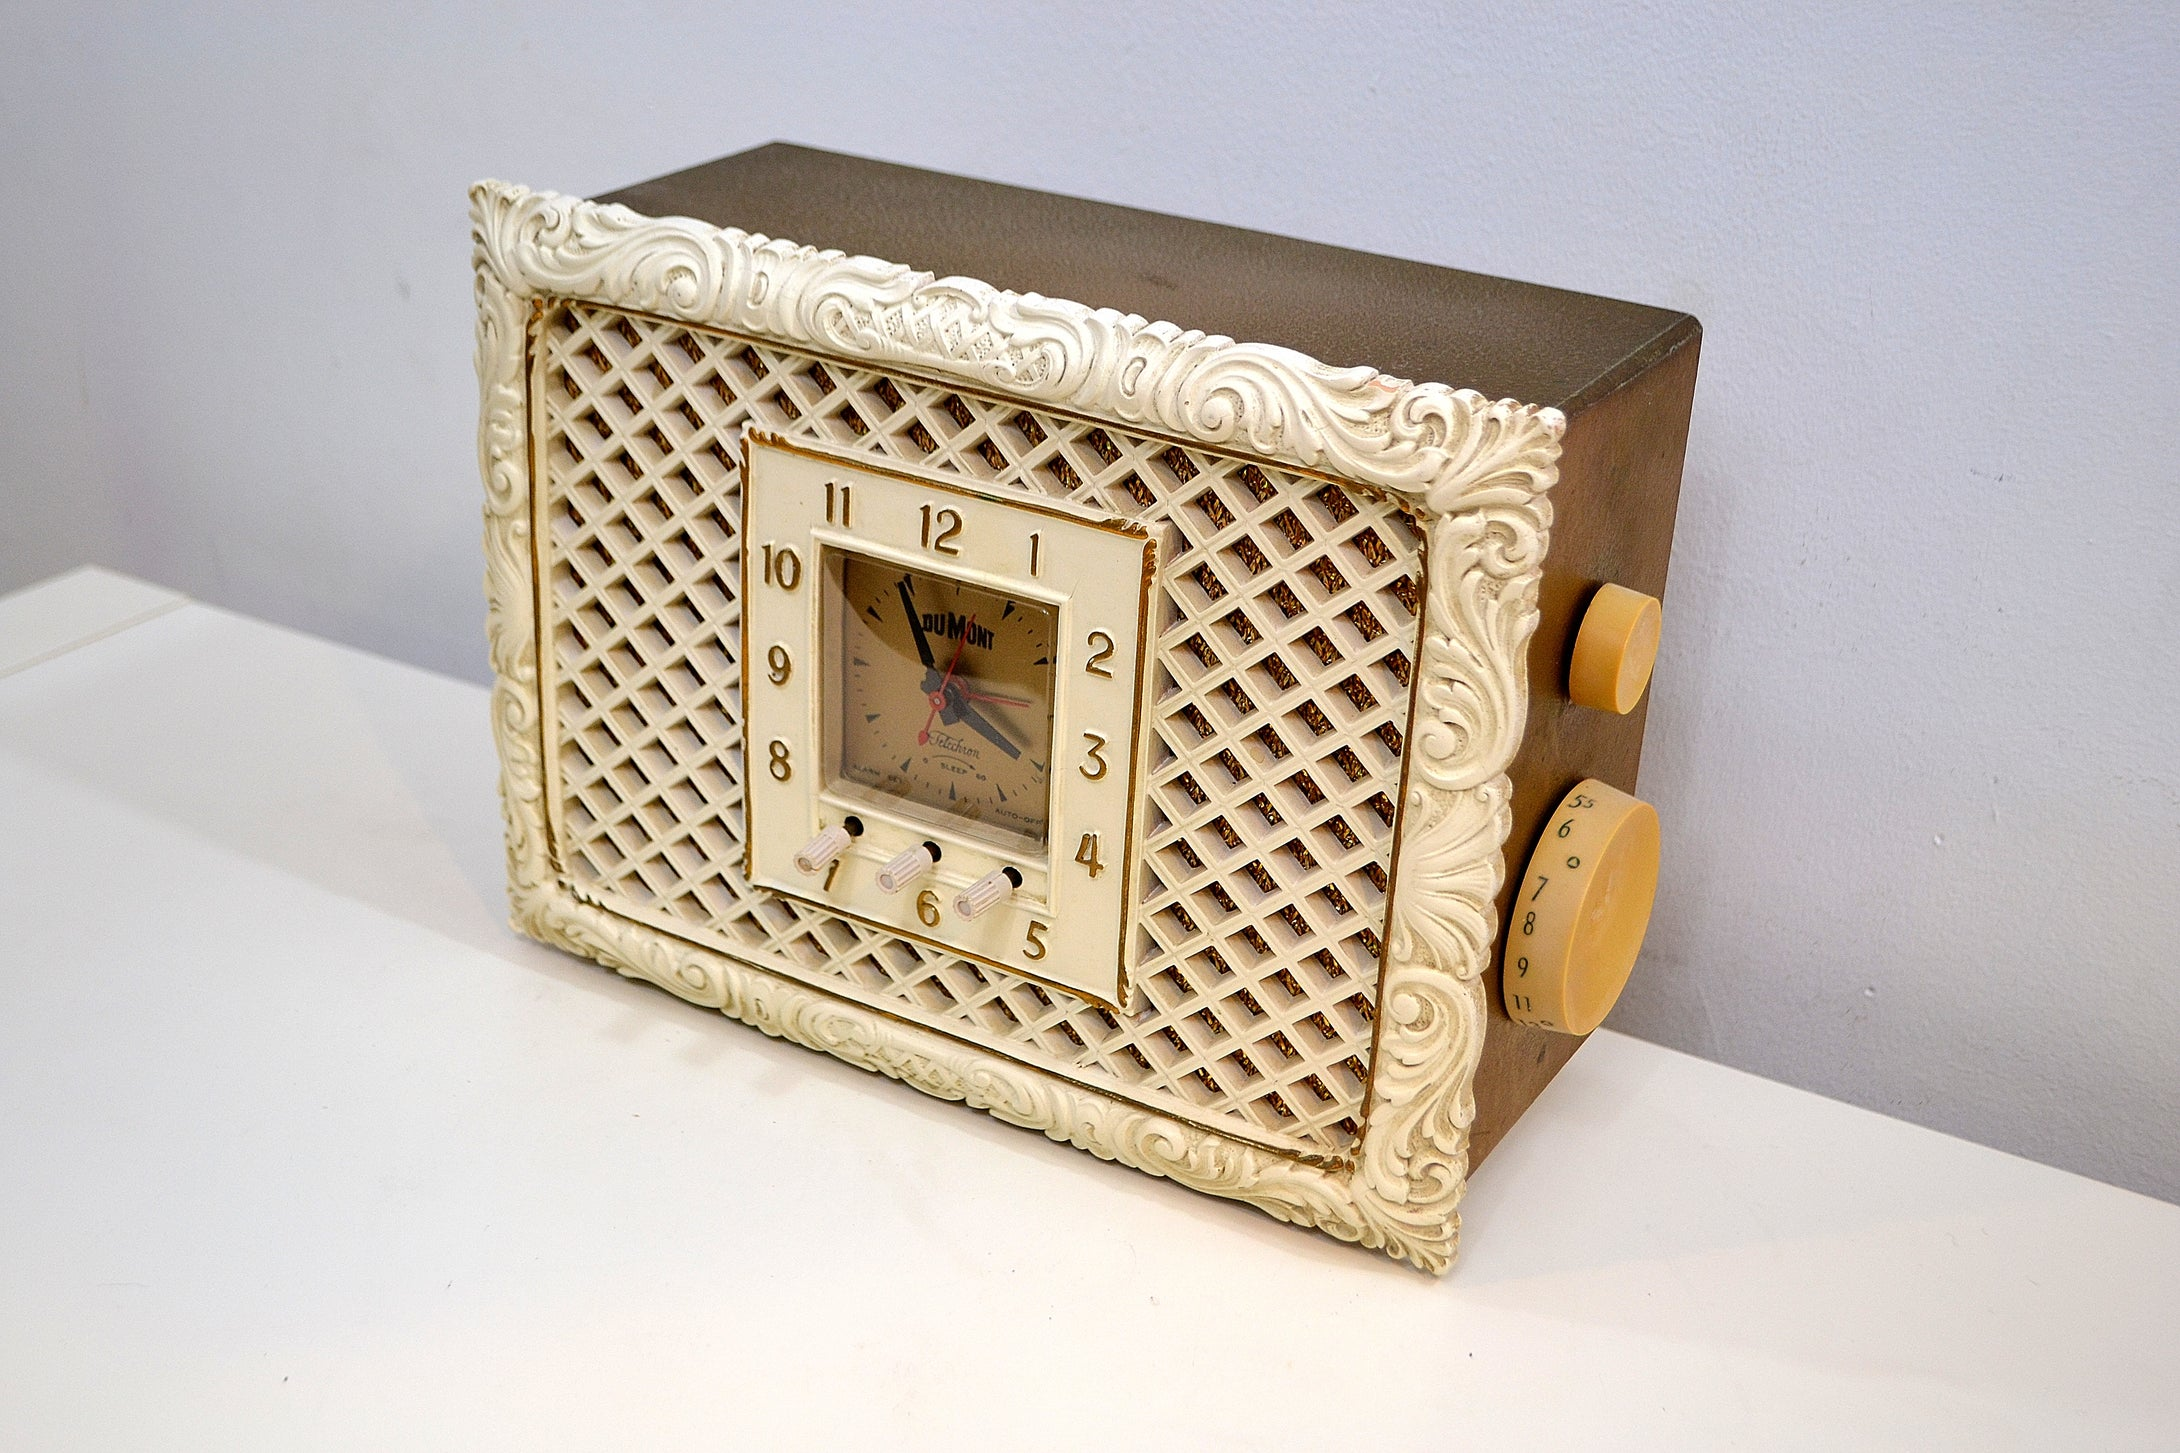 SOLD! - June 21, 2019 - Romantic Revival Louis XIV Rococo 1956 Dumont Model RA-346 Tube AM Radio Liberace Would Approve! - [product_type} - Dumont - Retro Radio Farm